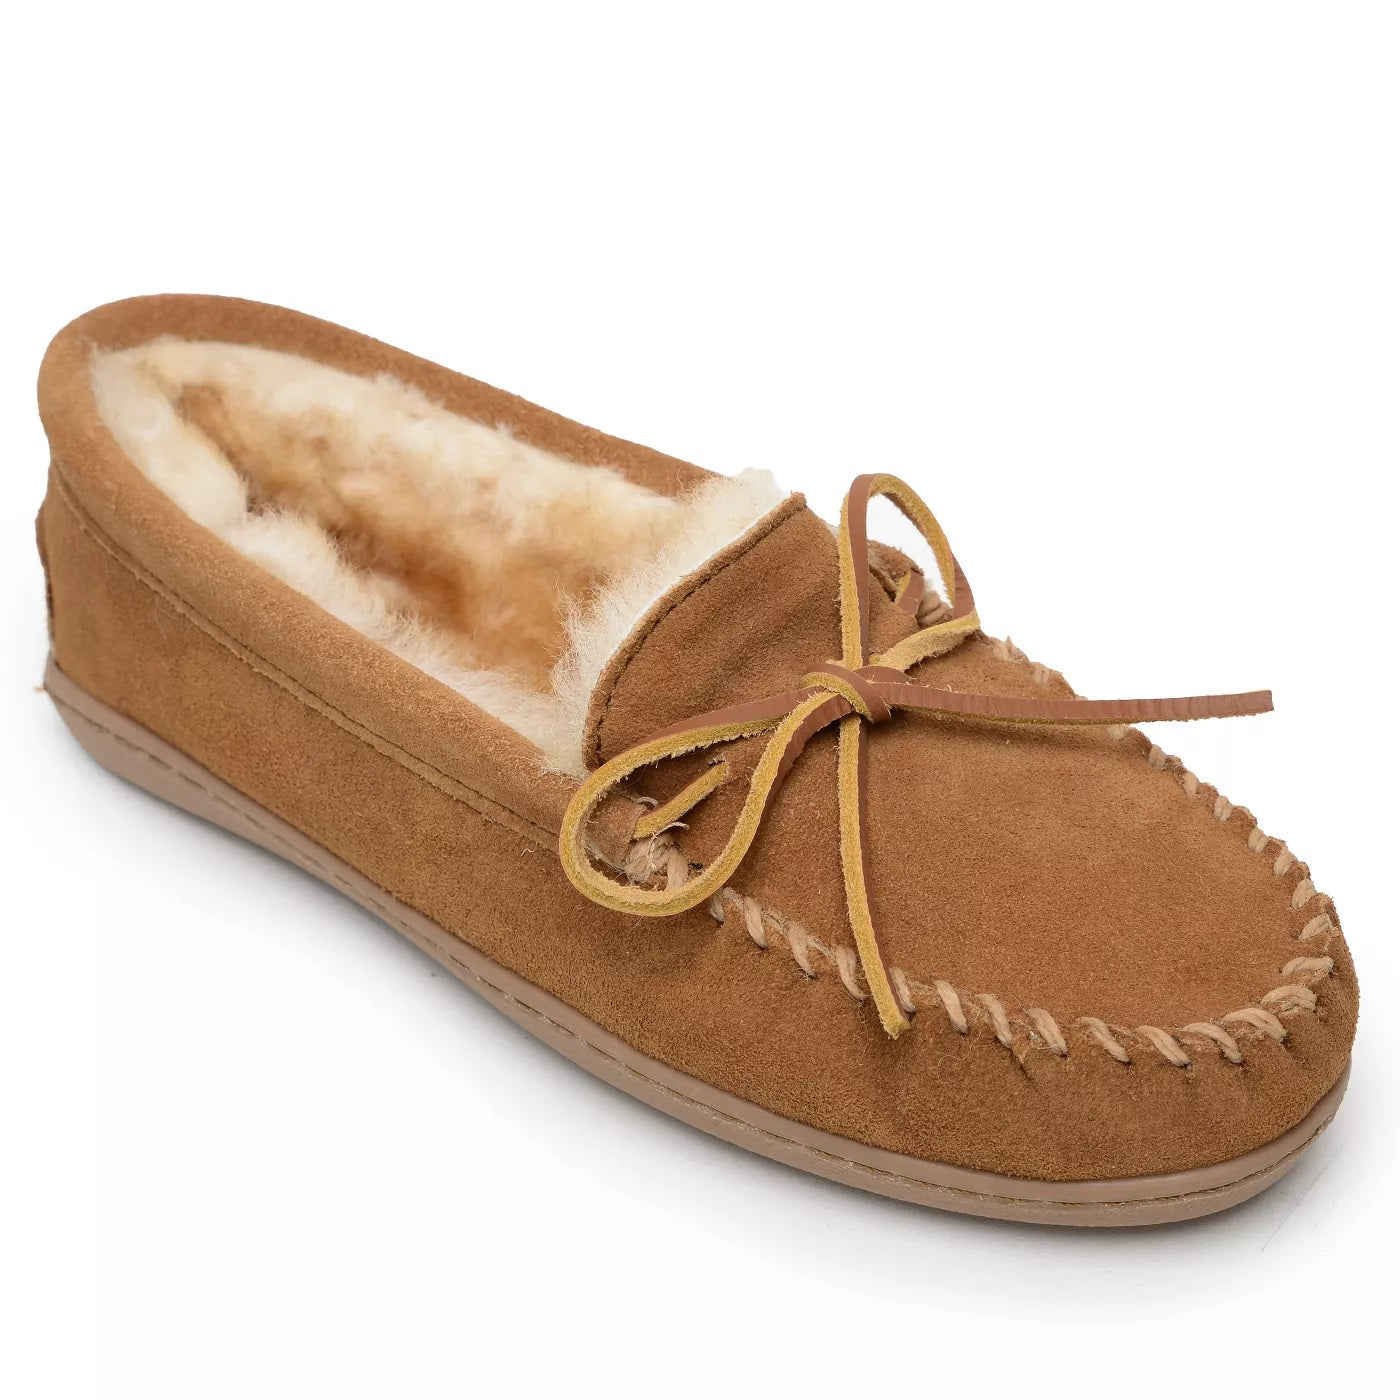 'Minnetonka' Men's Sheepskin Hardsole Moc Slipper - Tan